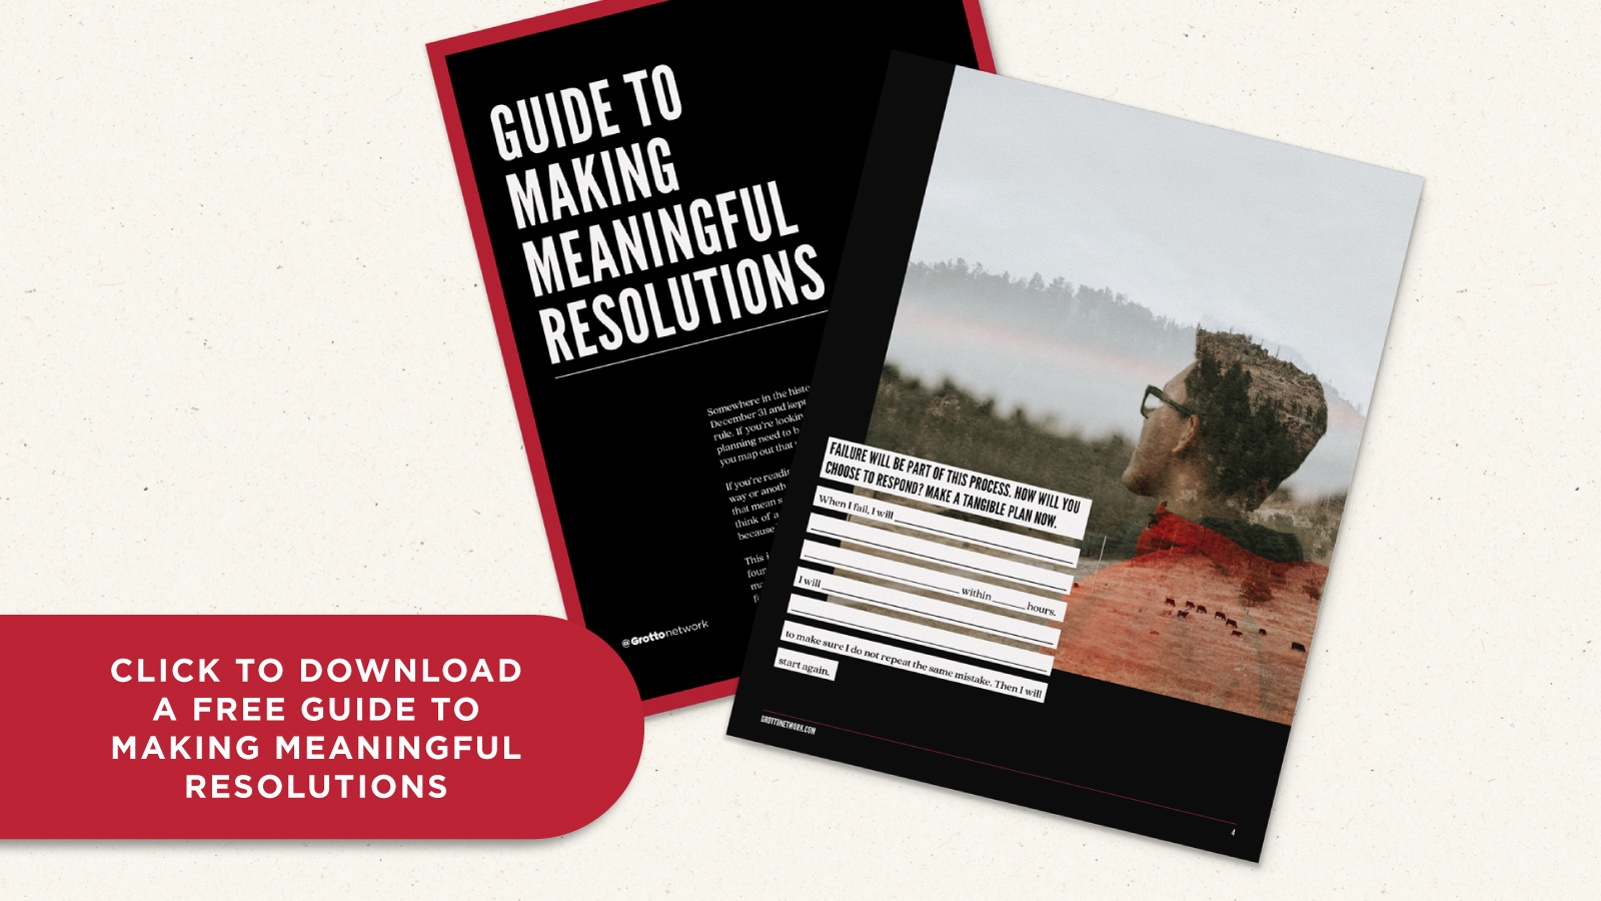 Click to download this free guide to making meaningful resolutions.